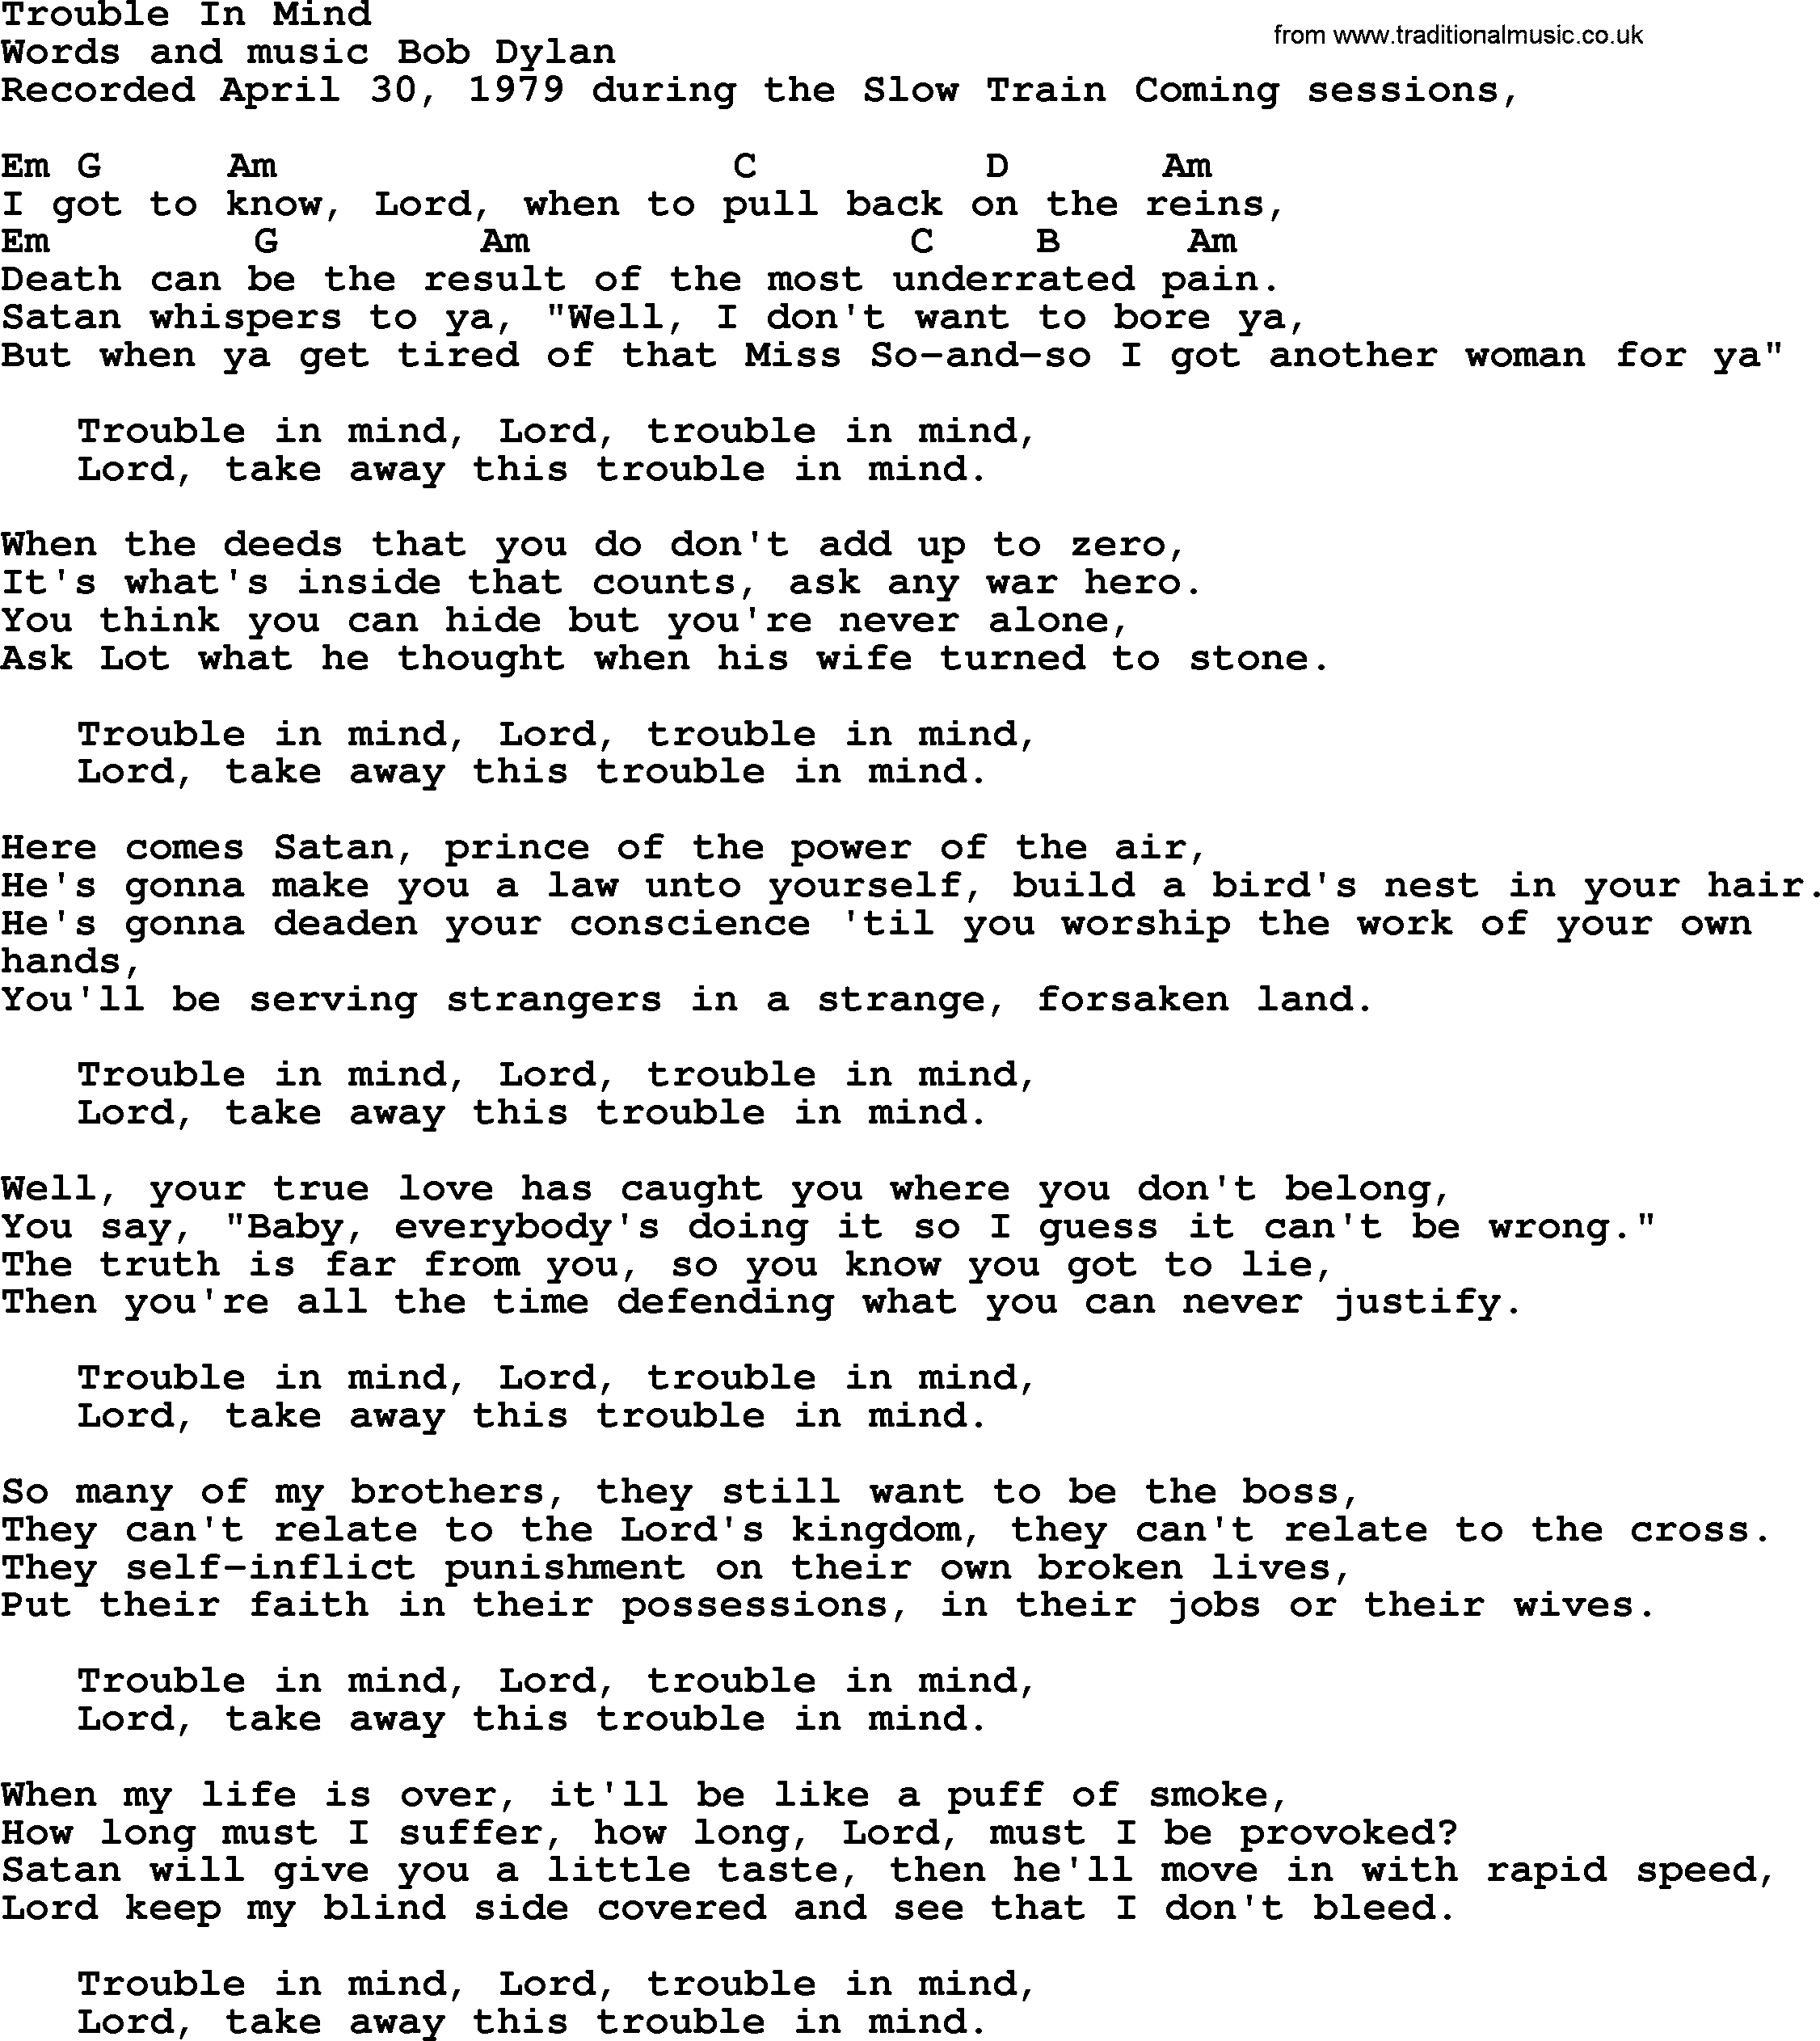 Bob Dylan Song Trouble In Mind Lyrics And Chords